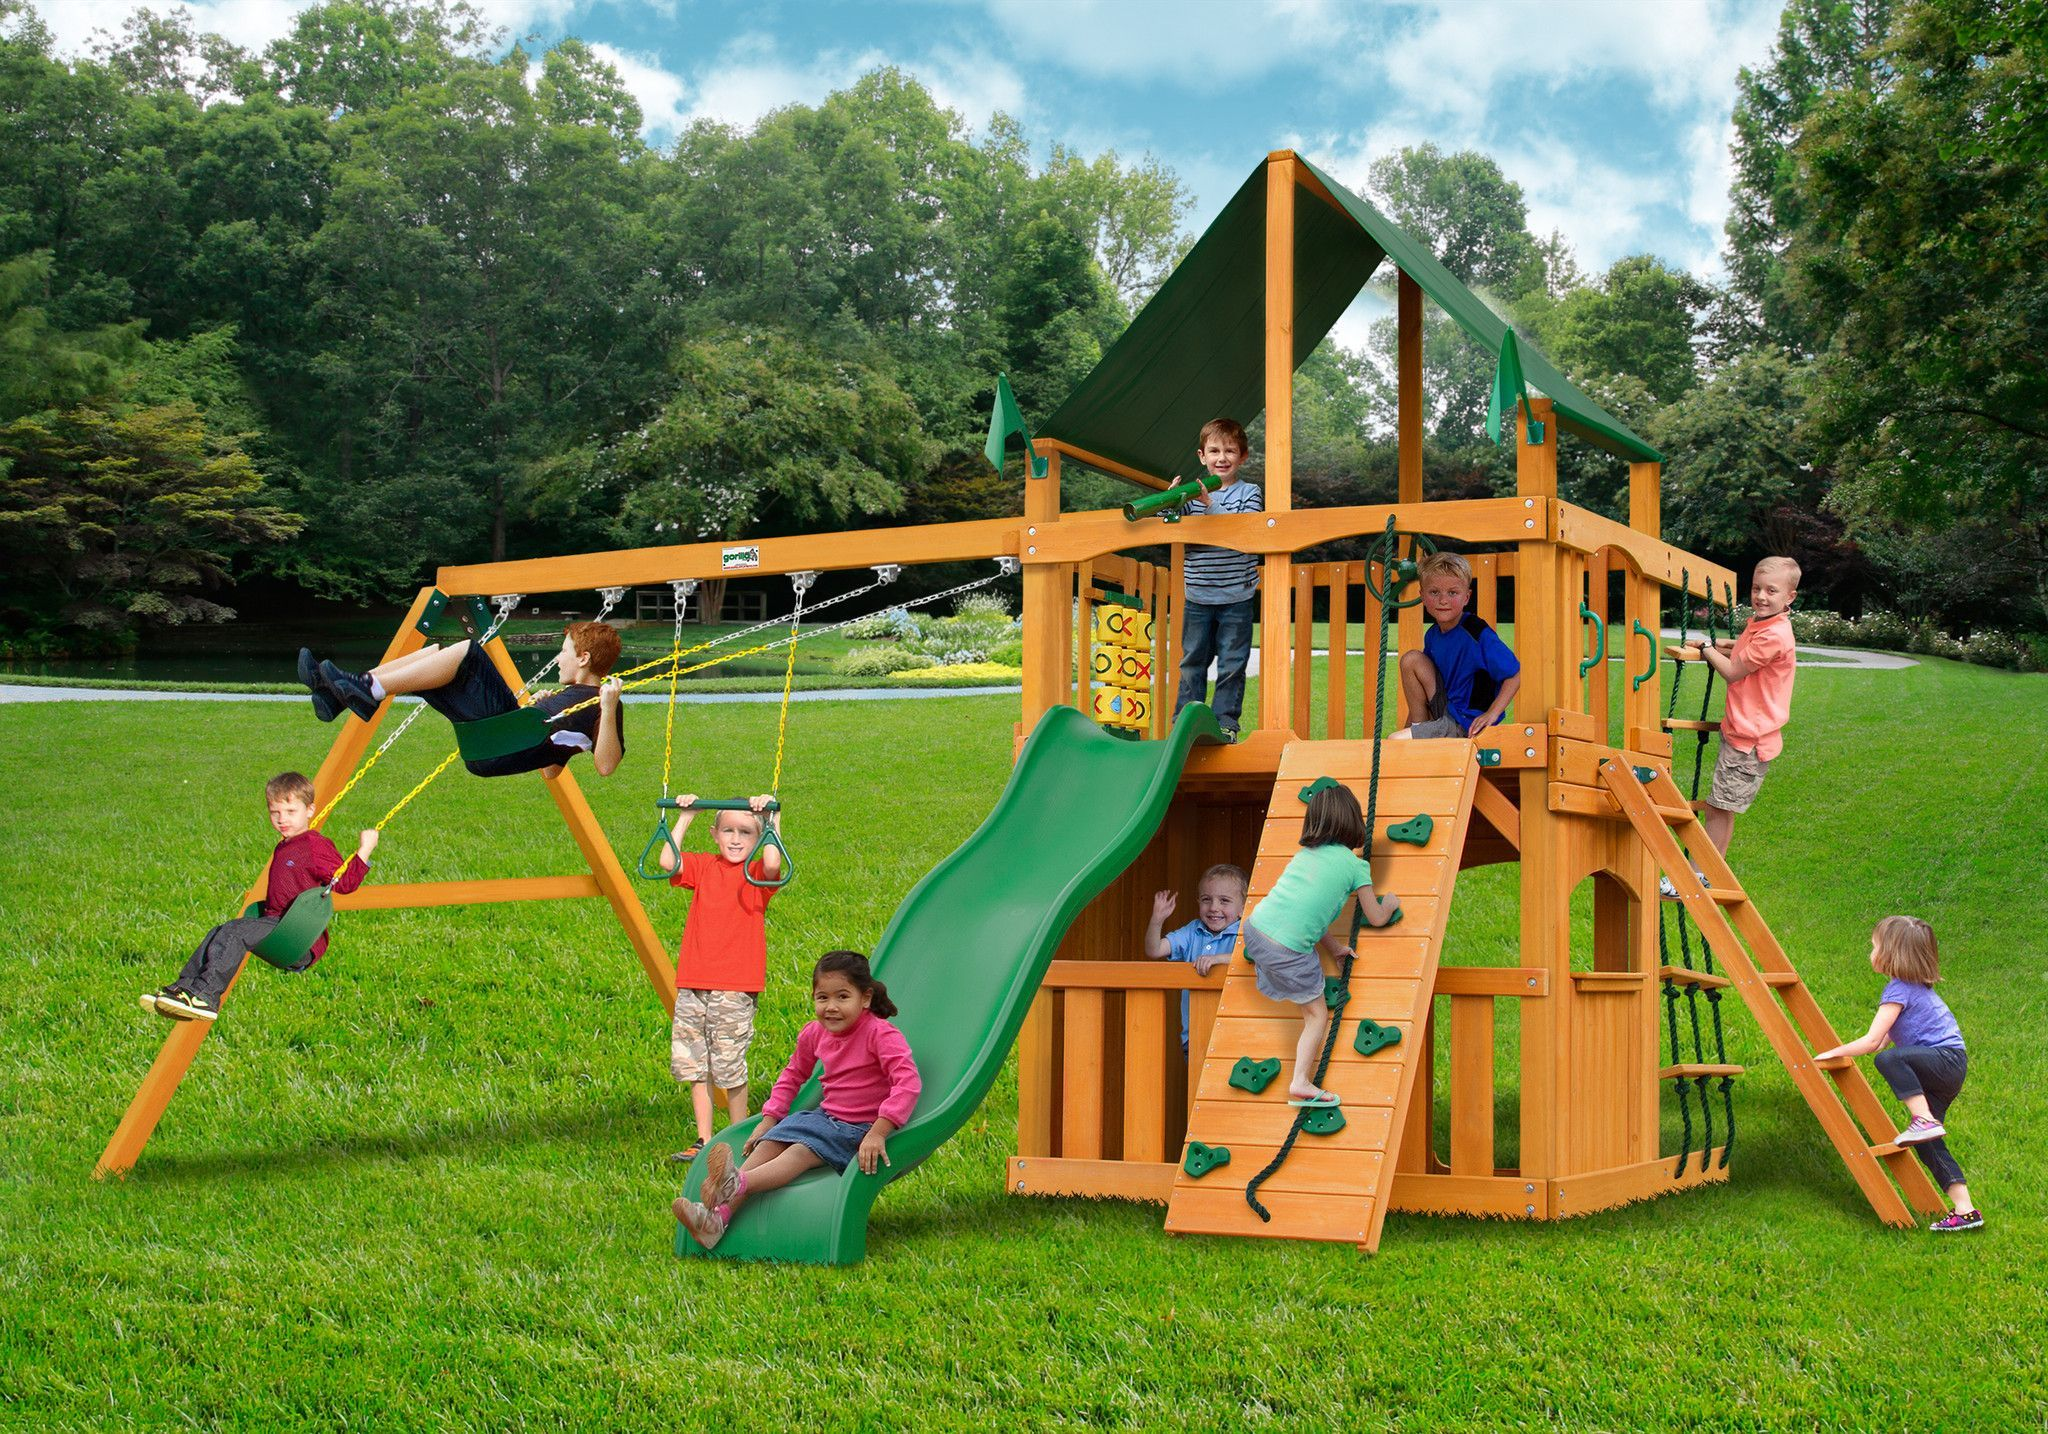 gorilla playset chateau ii clubhouse kids wooden swingset amber